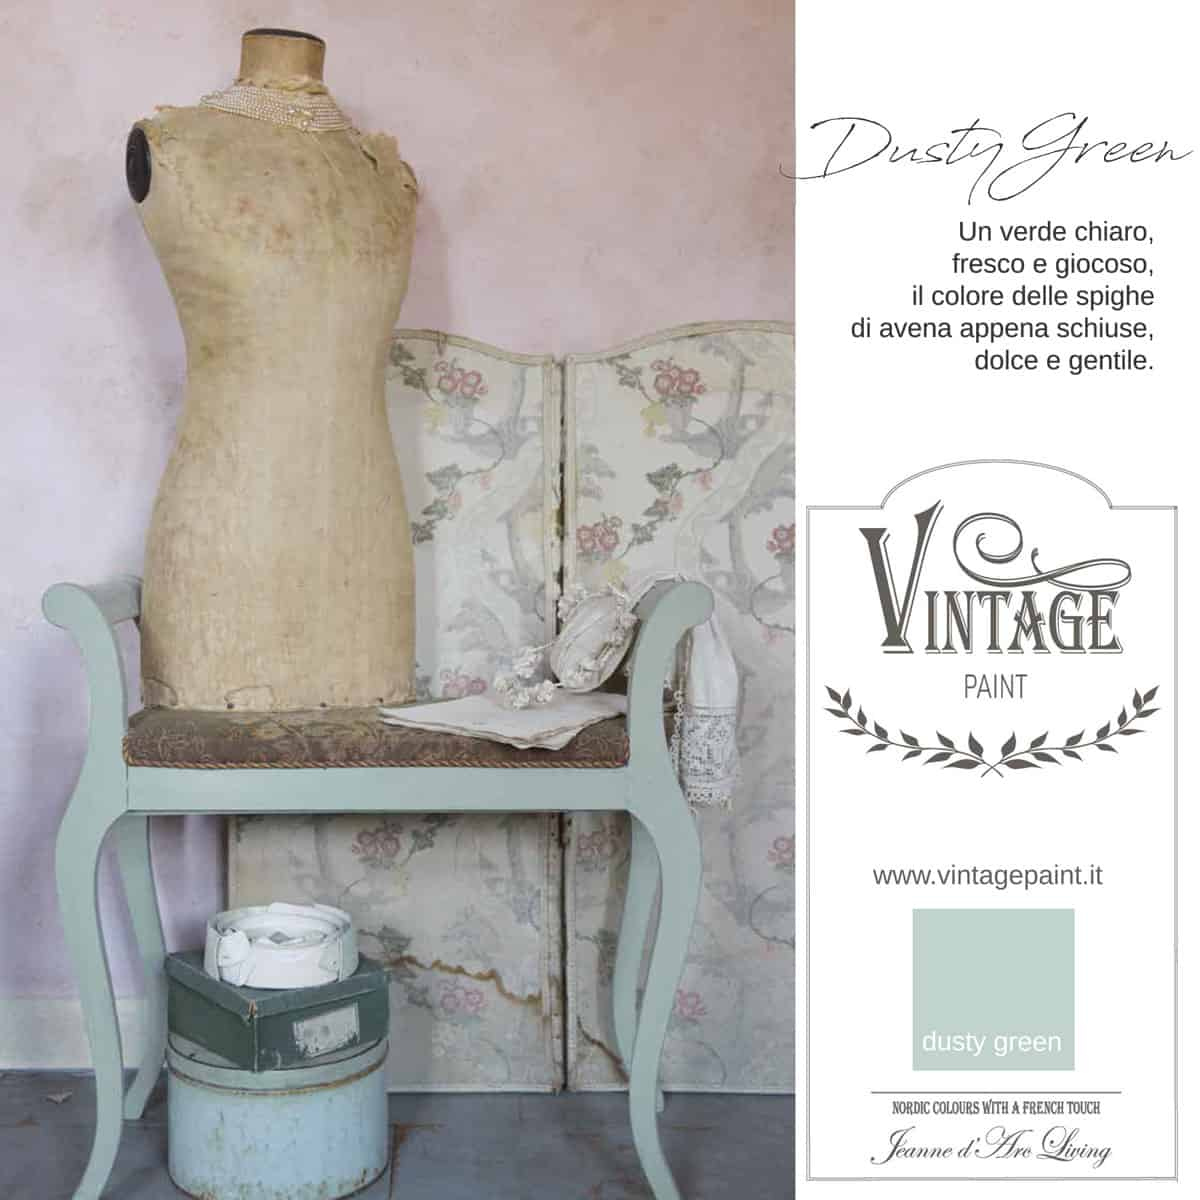 dusty green verde vintage chalk paint vernici shabby chic autentico look gesso